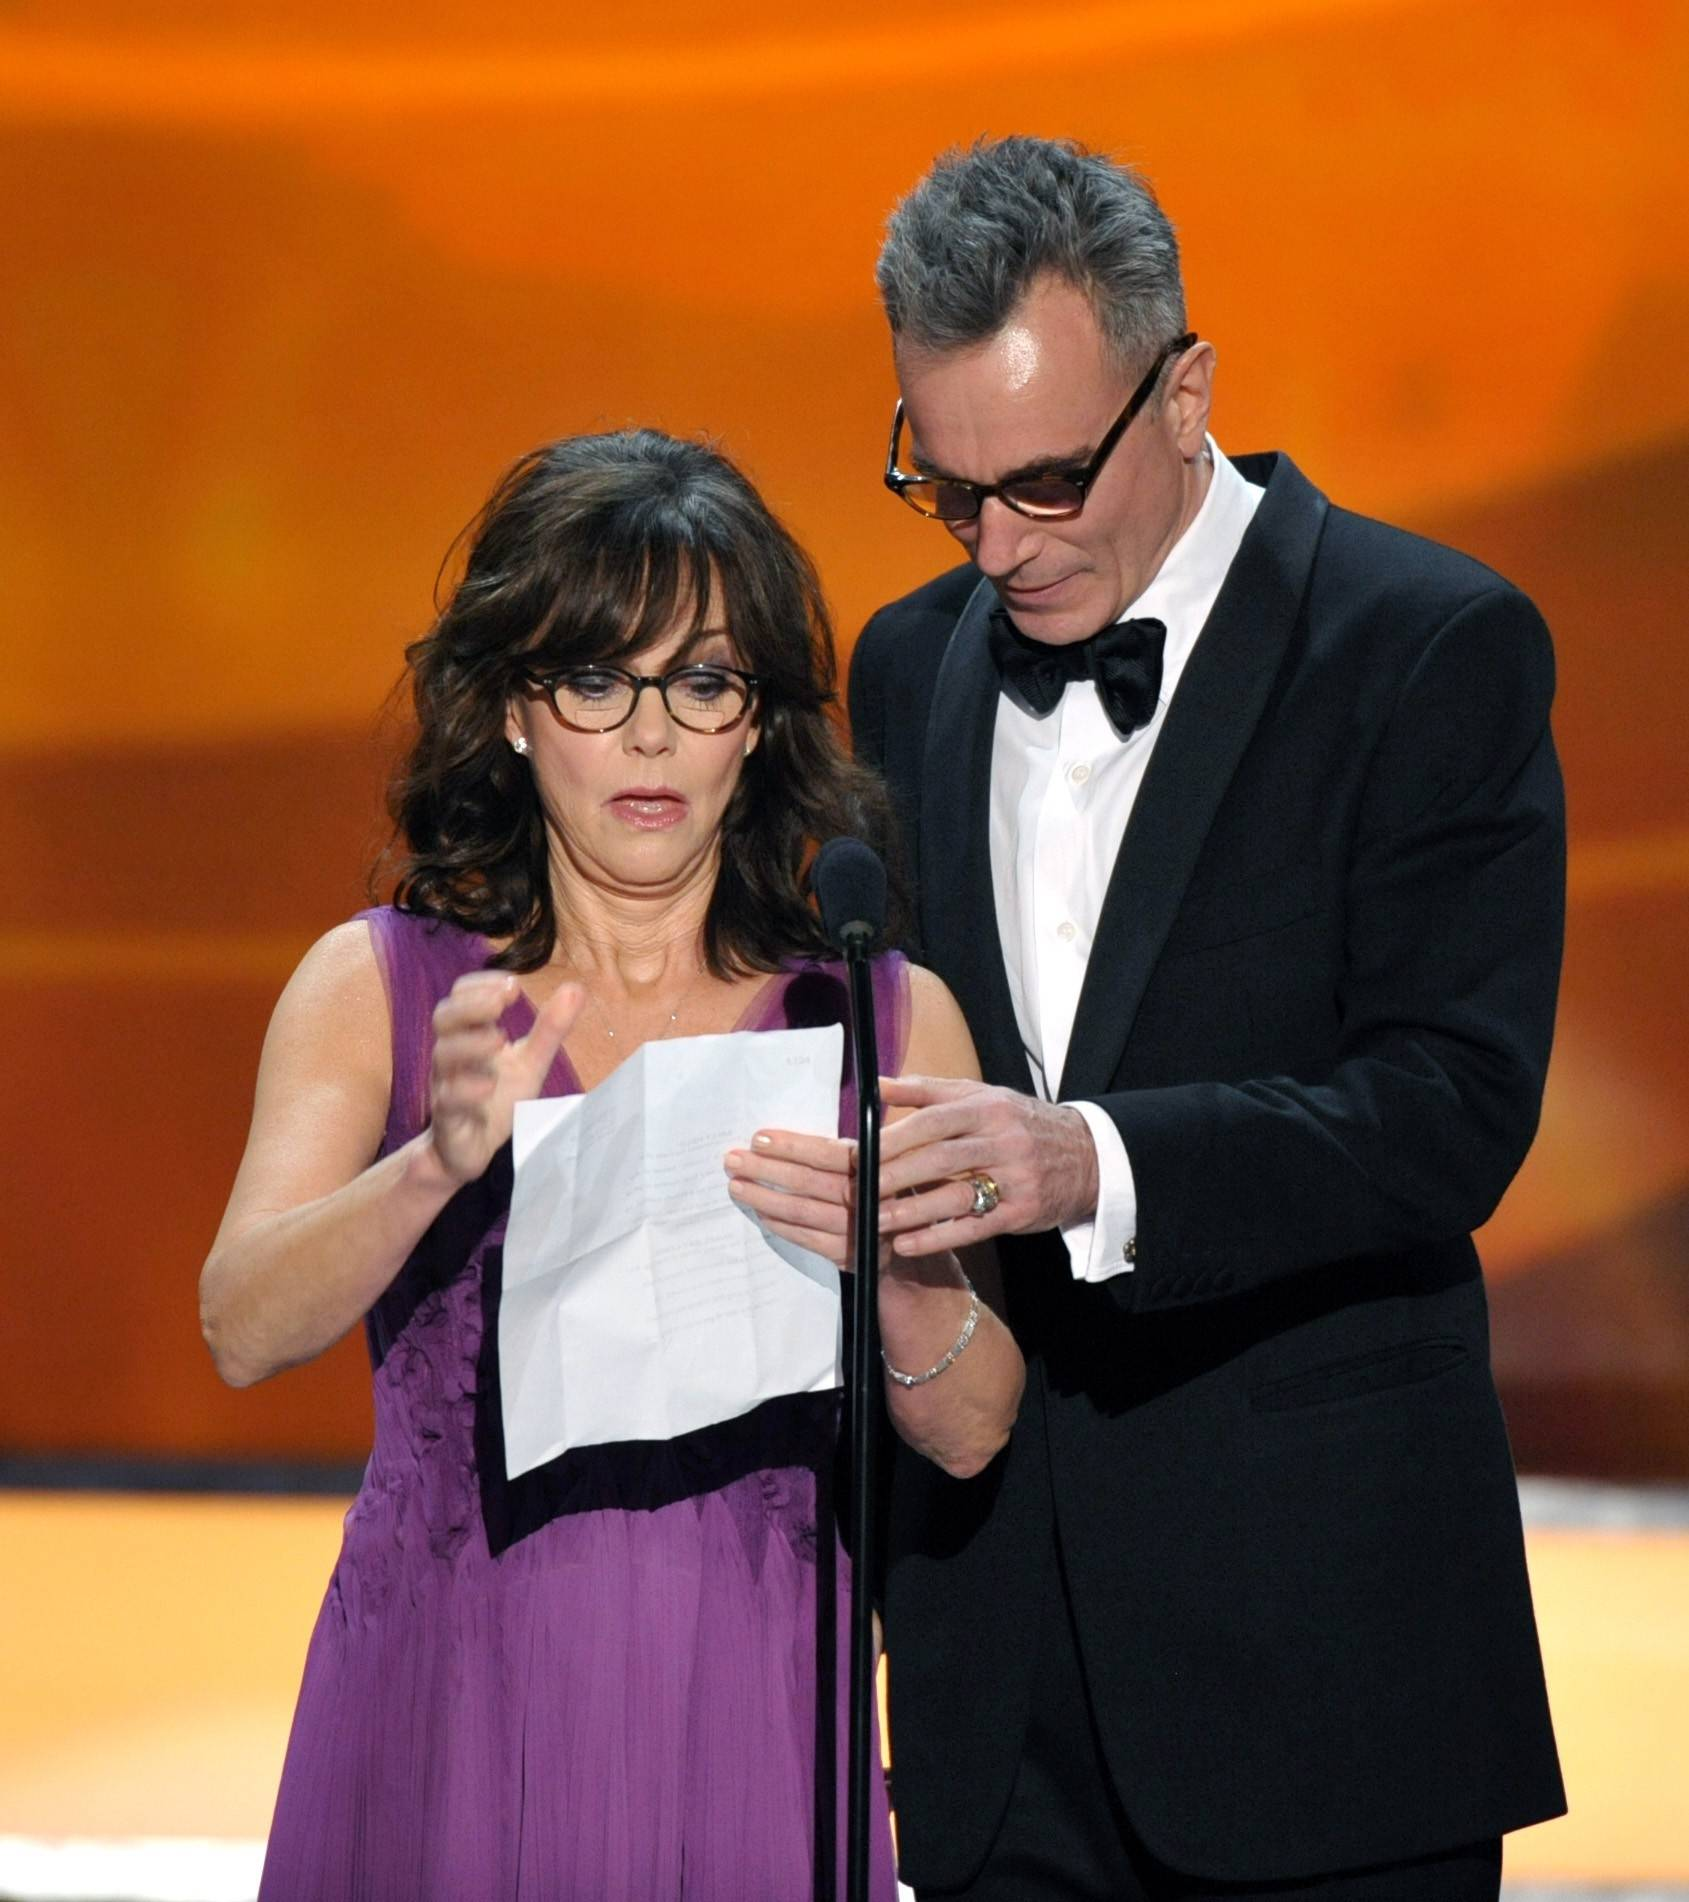 Sally Field gets a little help reading from Daniel Day-Lewis.